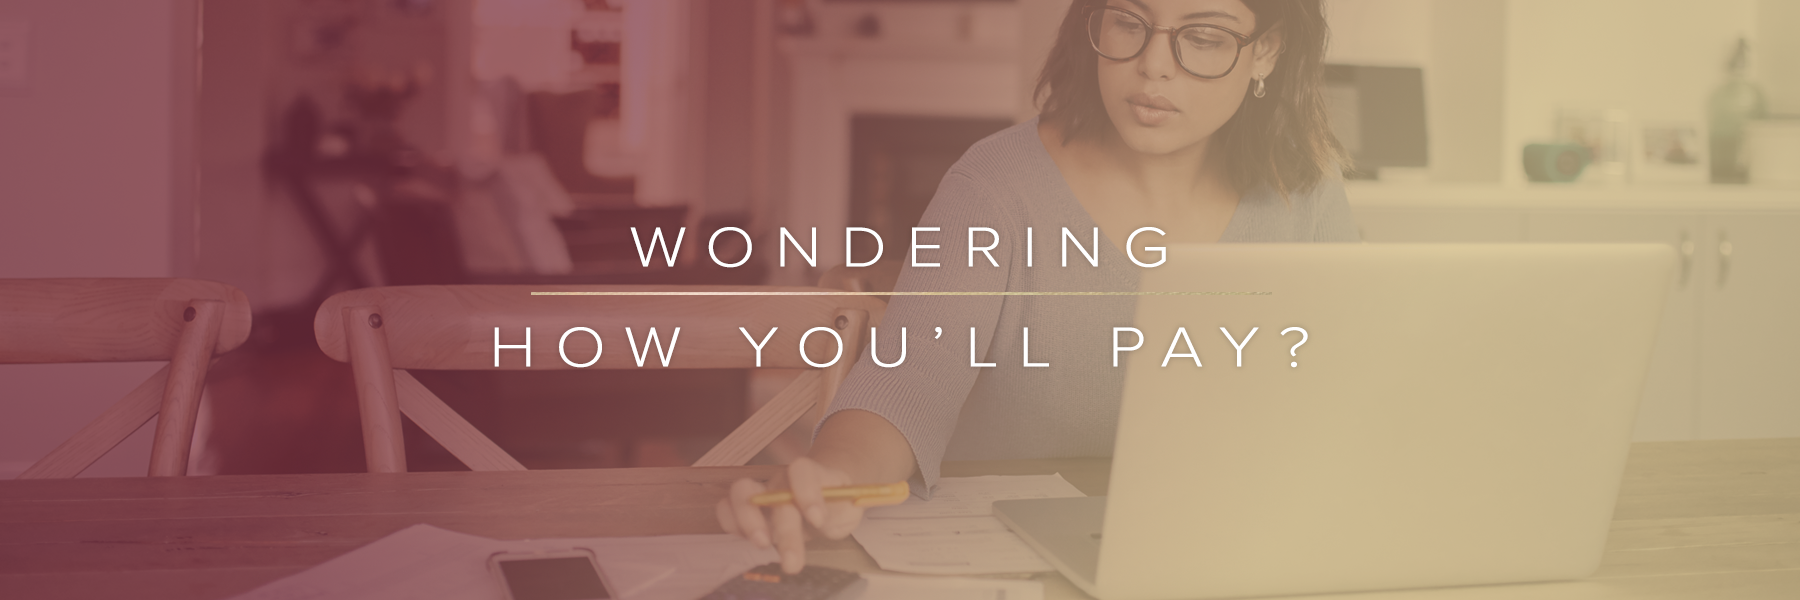 wondering how you'll pay?